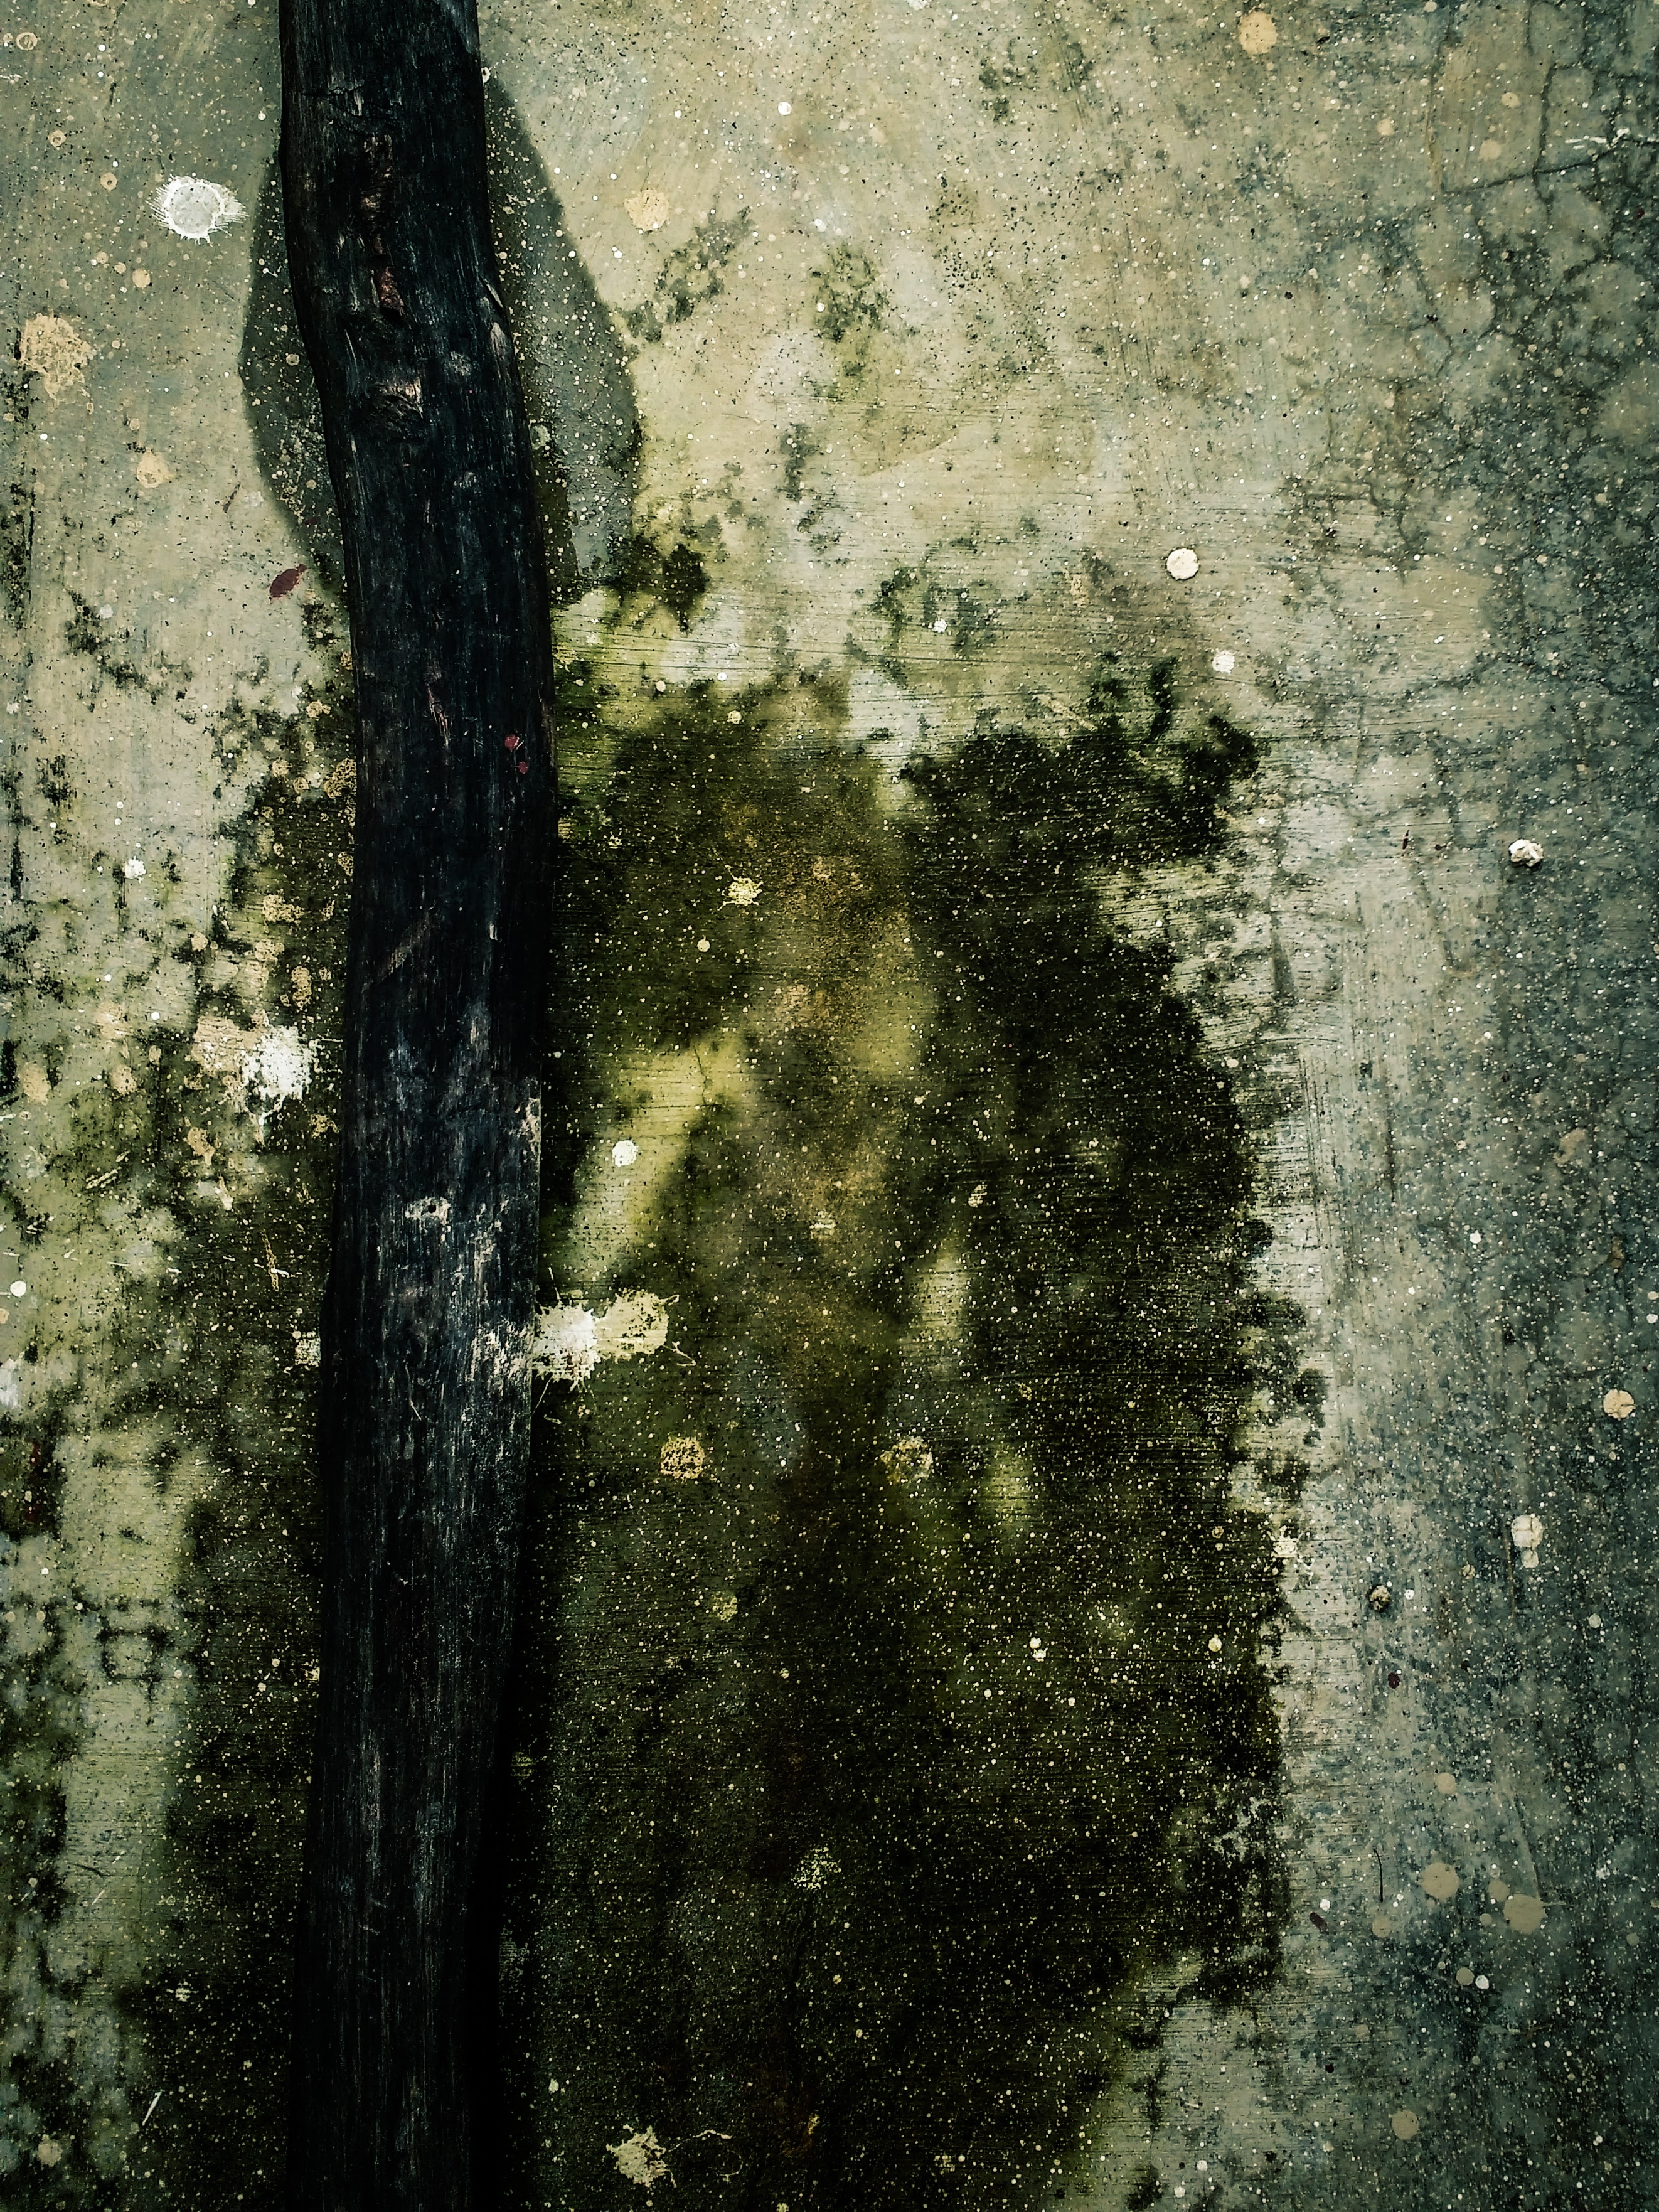 Common Problem: Mold & Mildew